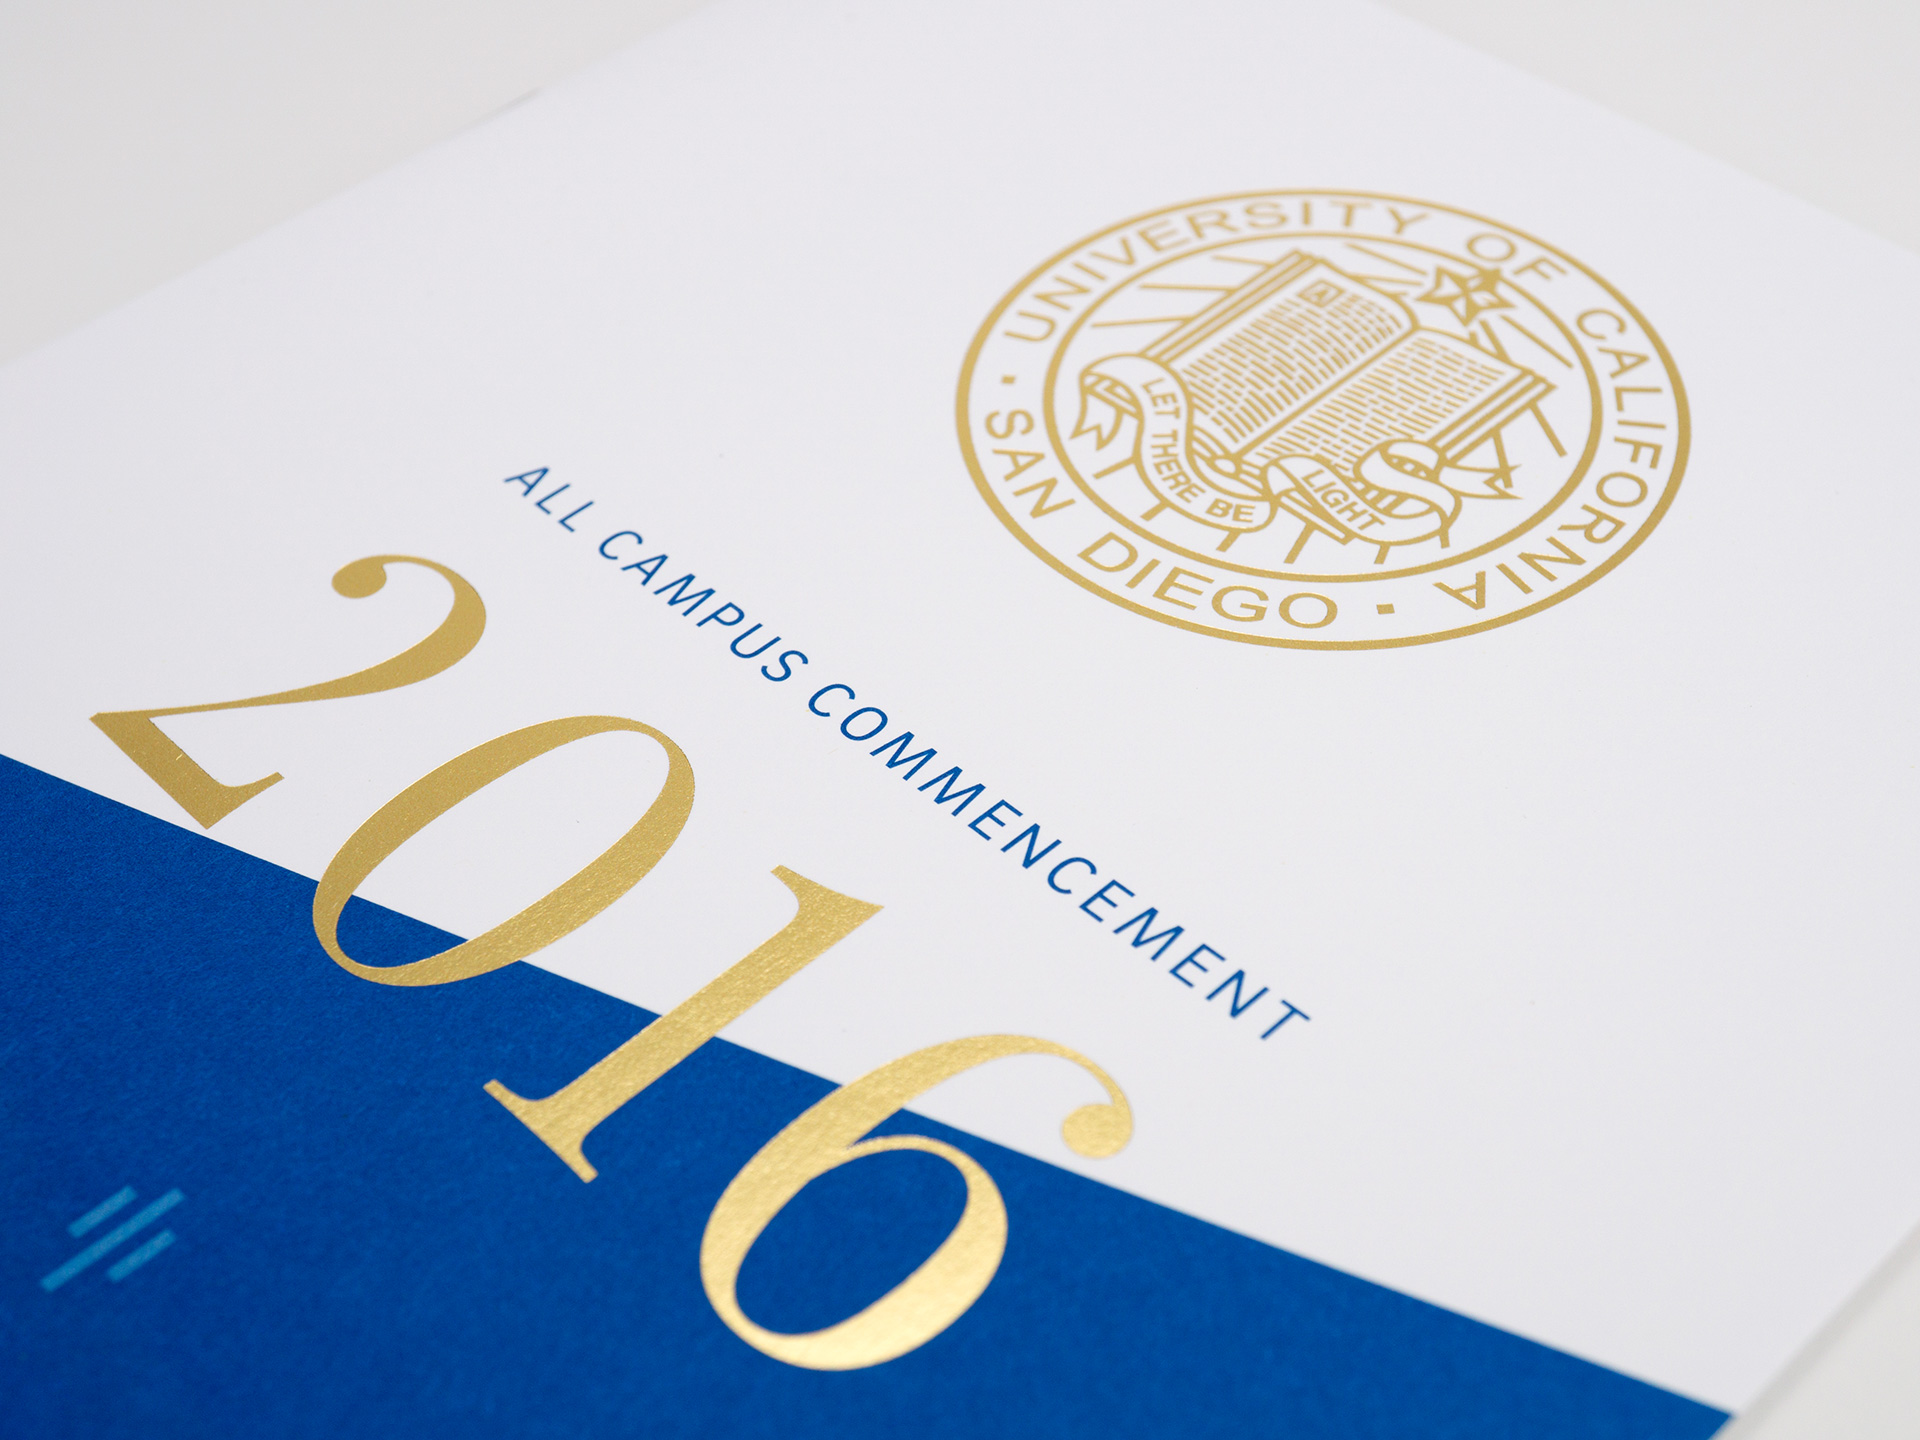 UC San Diego, All Campus Commencement Program